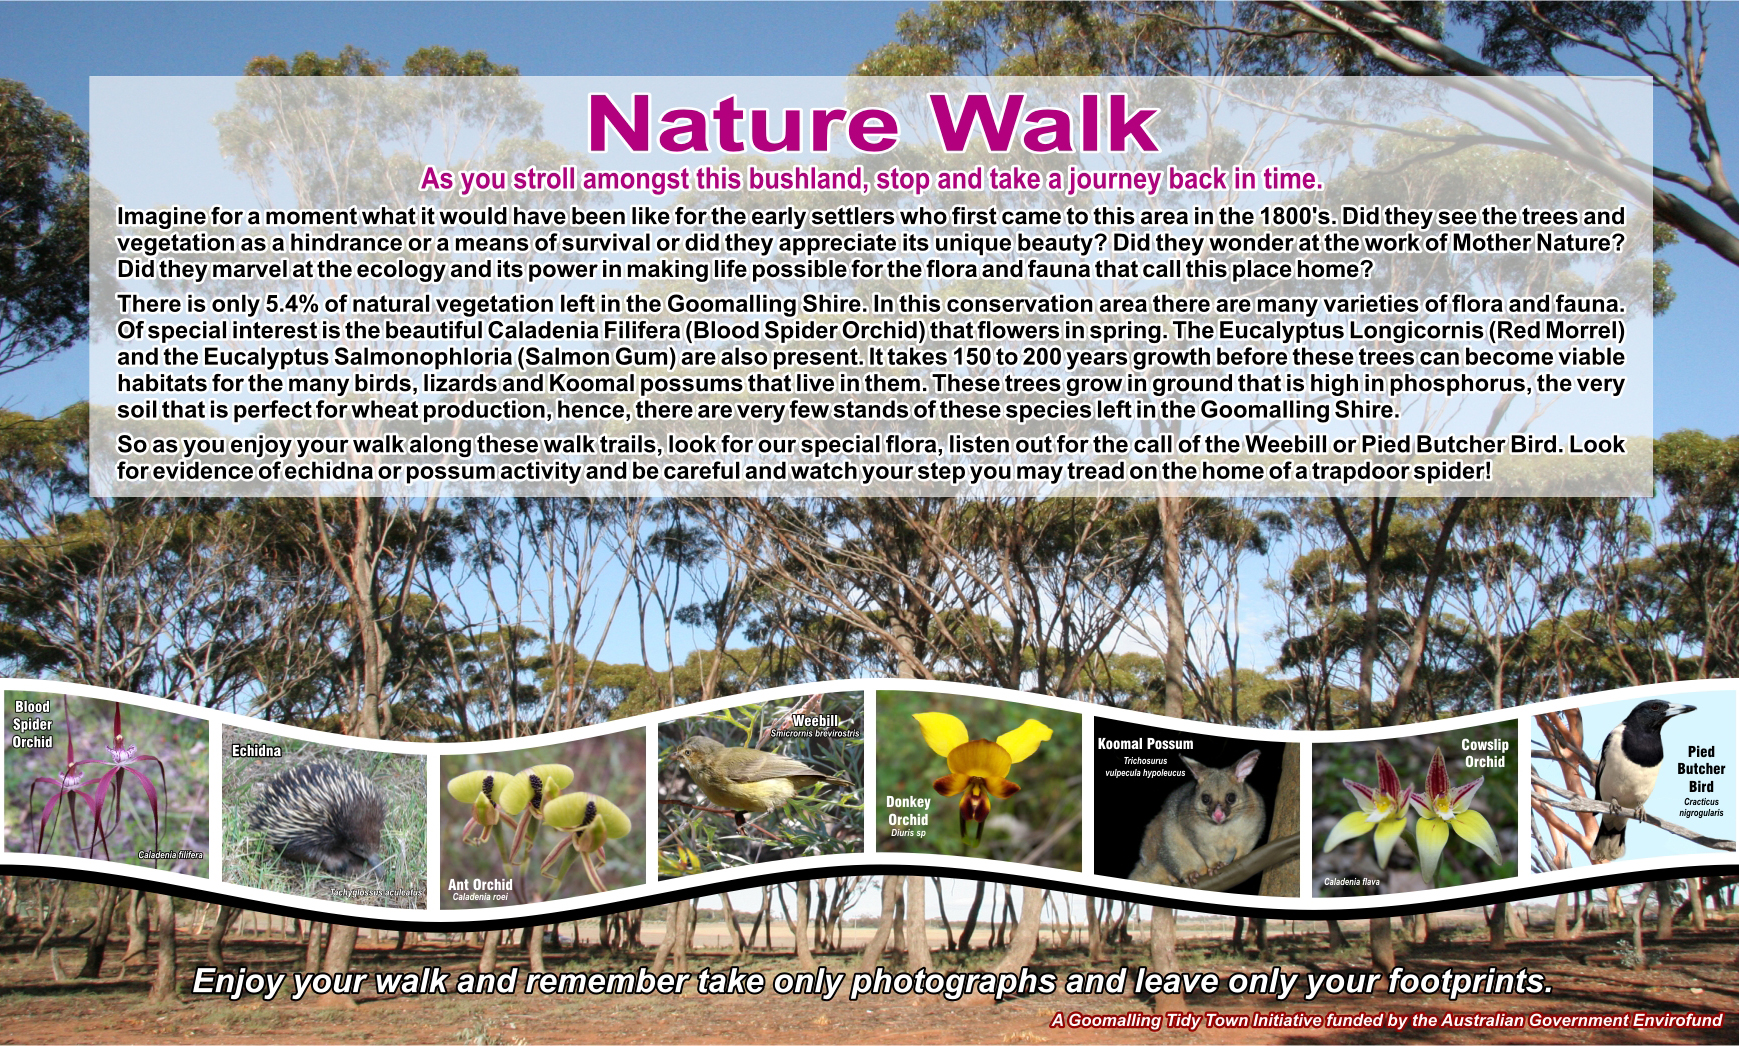 Nature Walk information sign at Salmon Gum Way, Goomalling WA